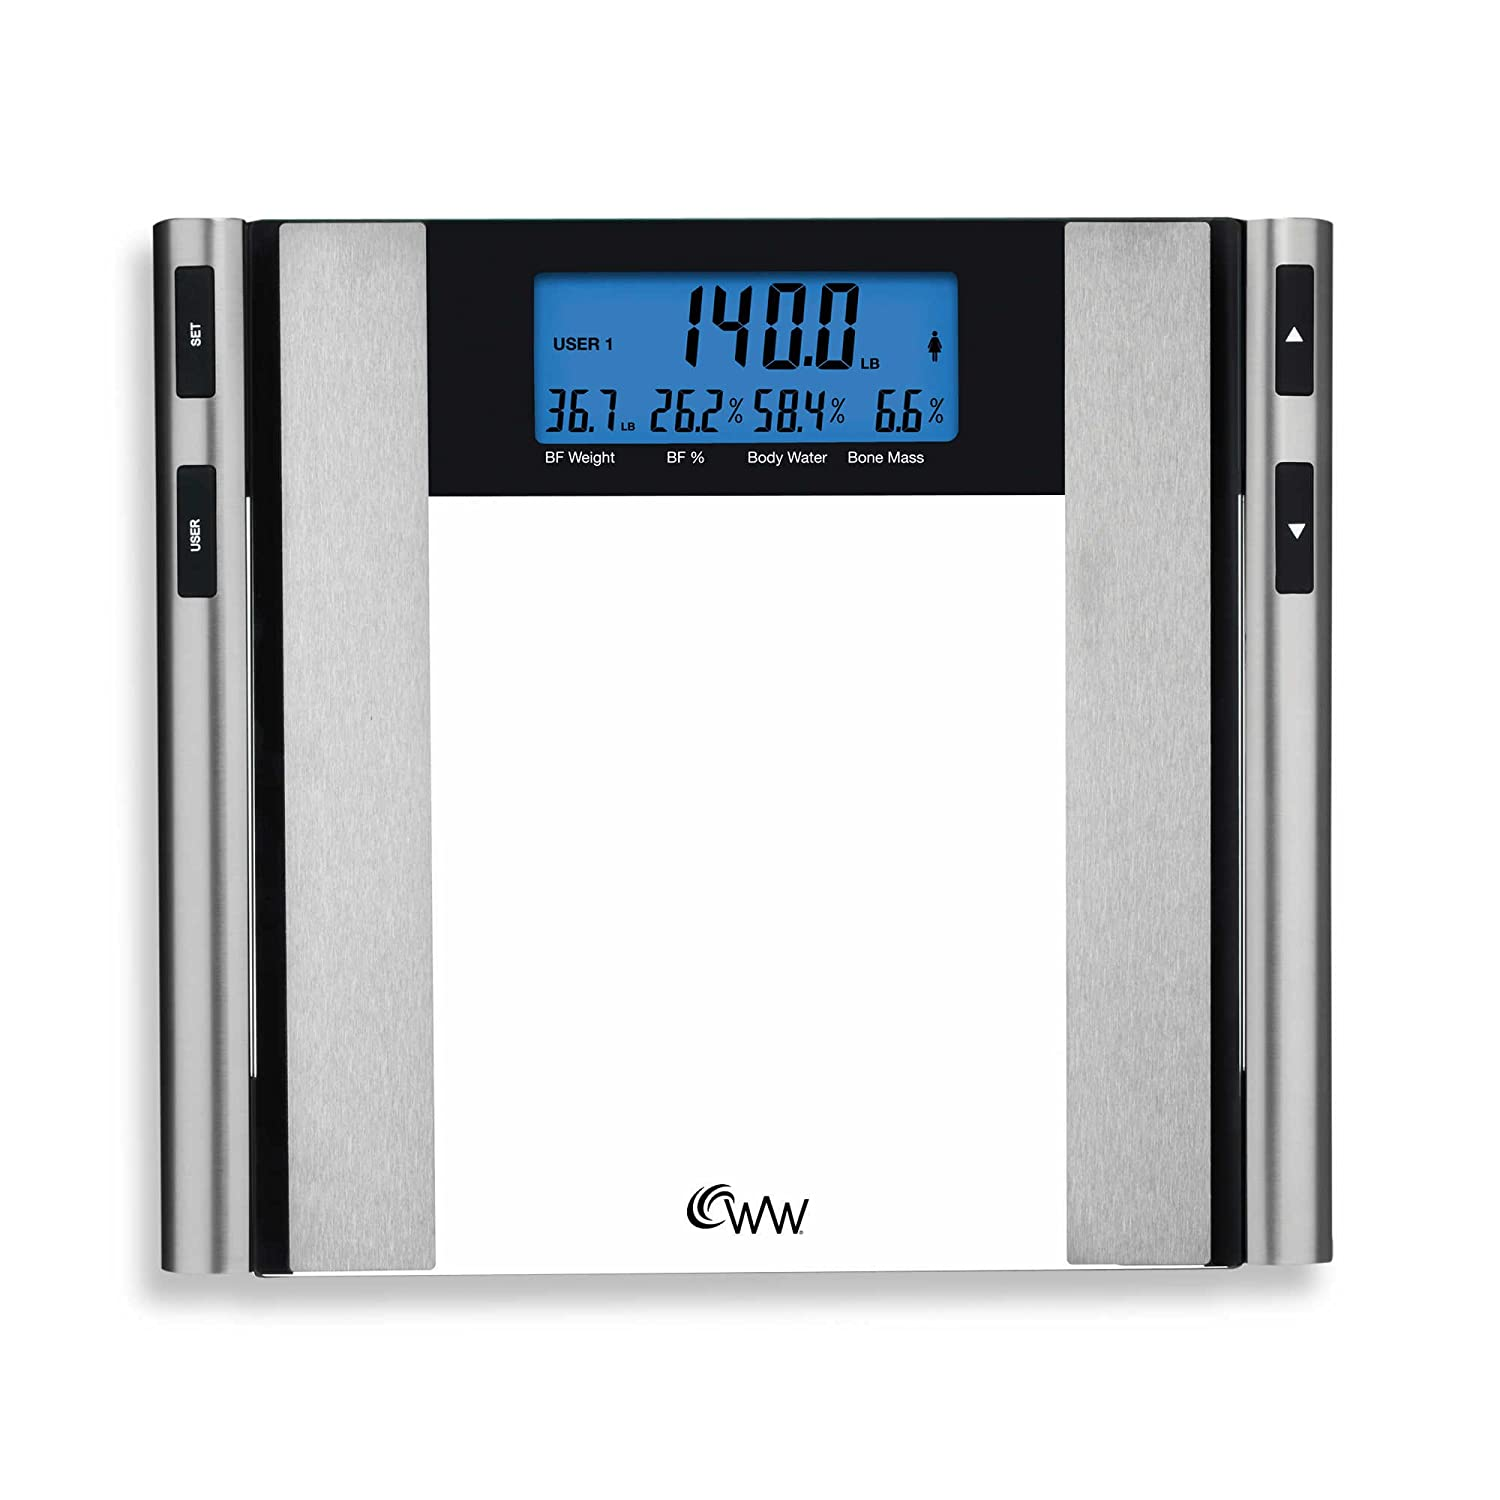 2 x 5 Two-Line Display Glass Satin Nickel Body Analysis Comprehensive Bathroom Scale with BIA technology by Weight Watchers